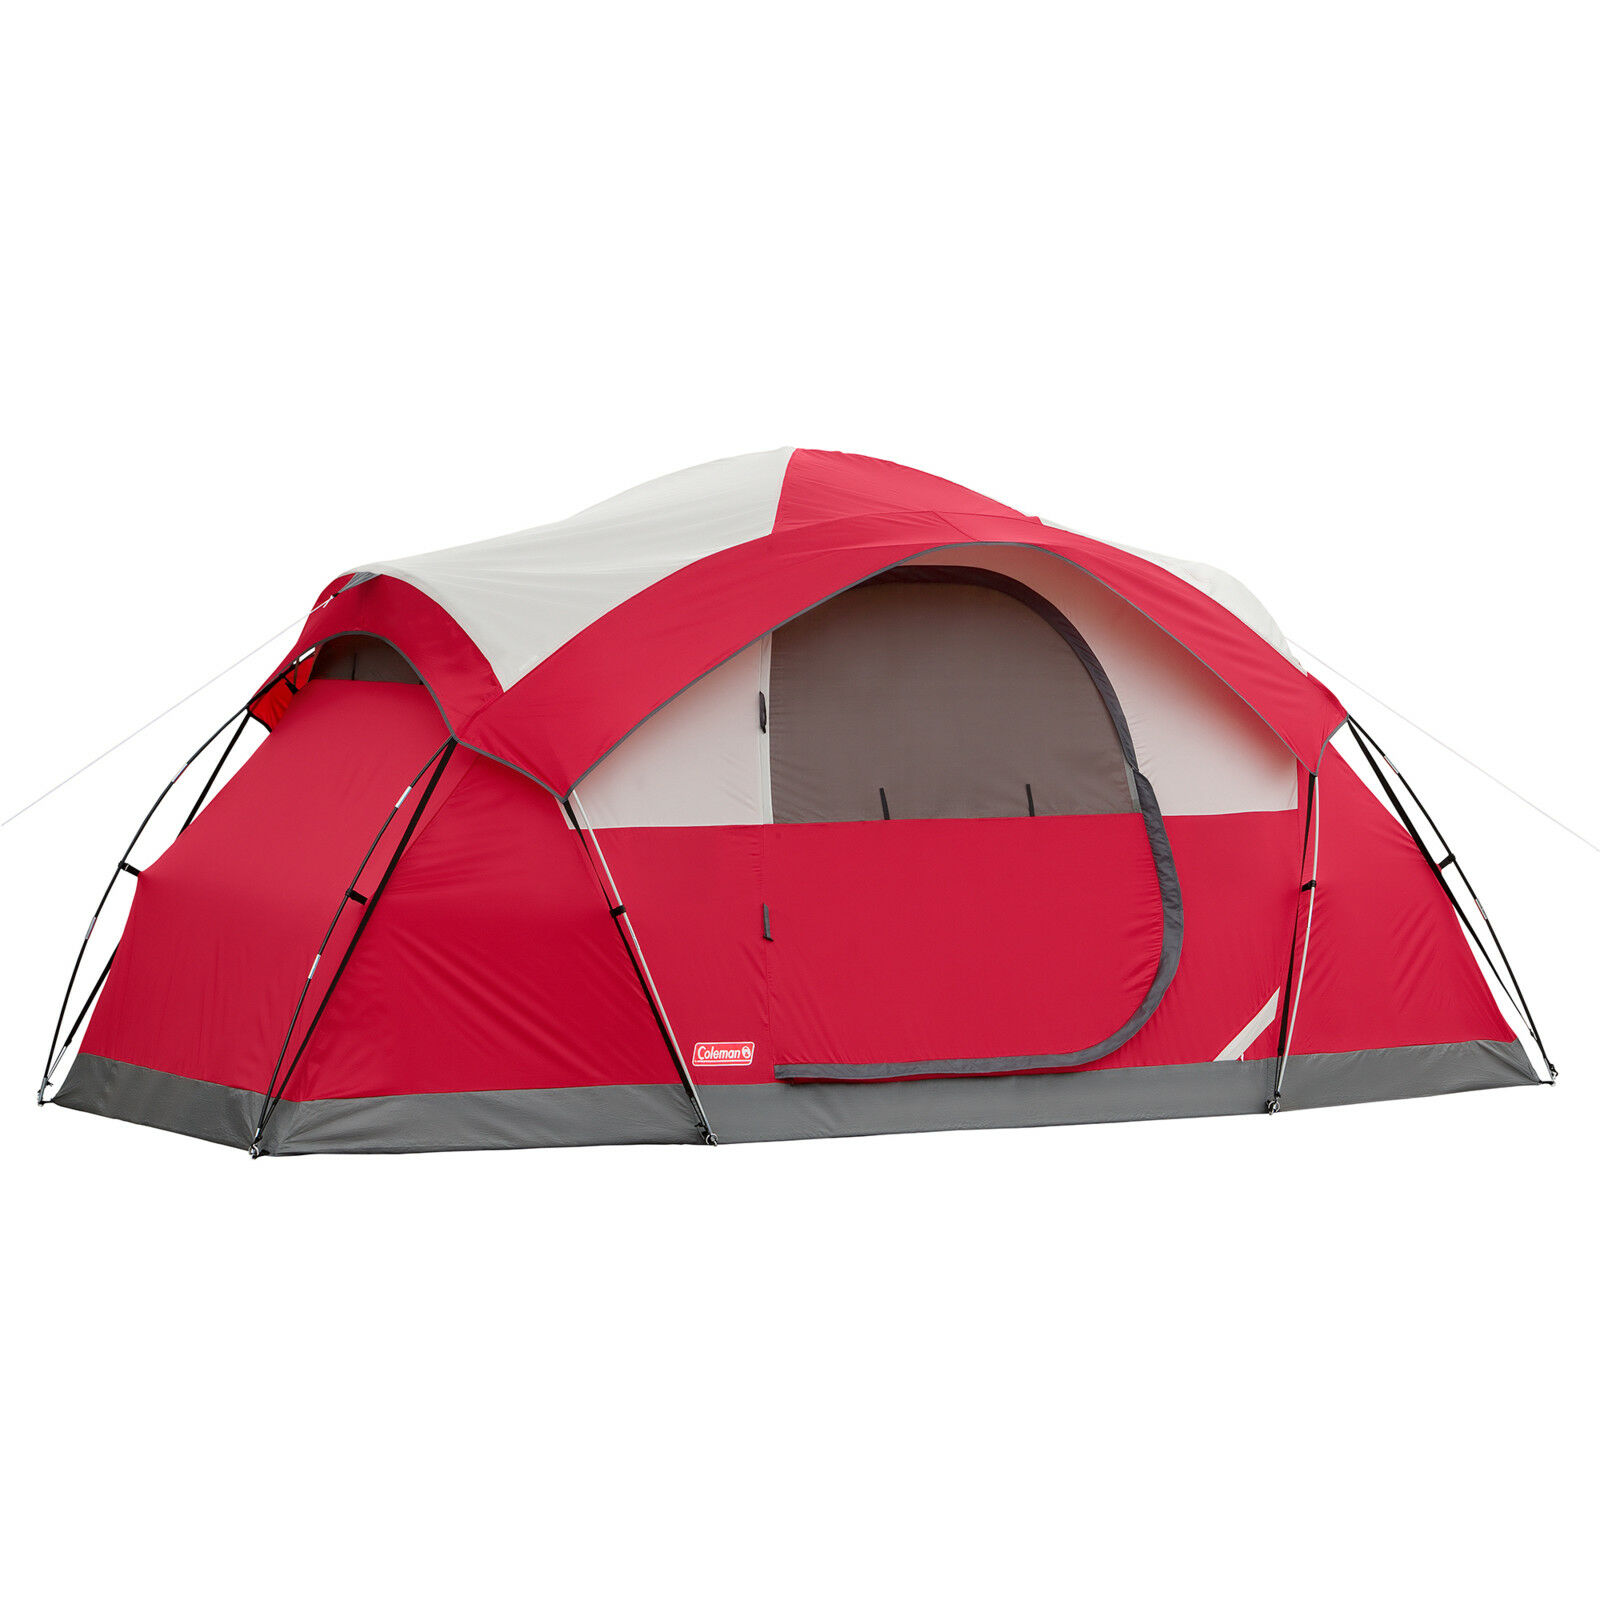 8-Person Large Camping Tent Waterproof Outdoor Dome Family Cabin Shelter Canopy